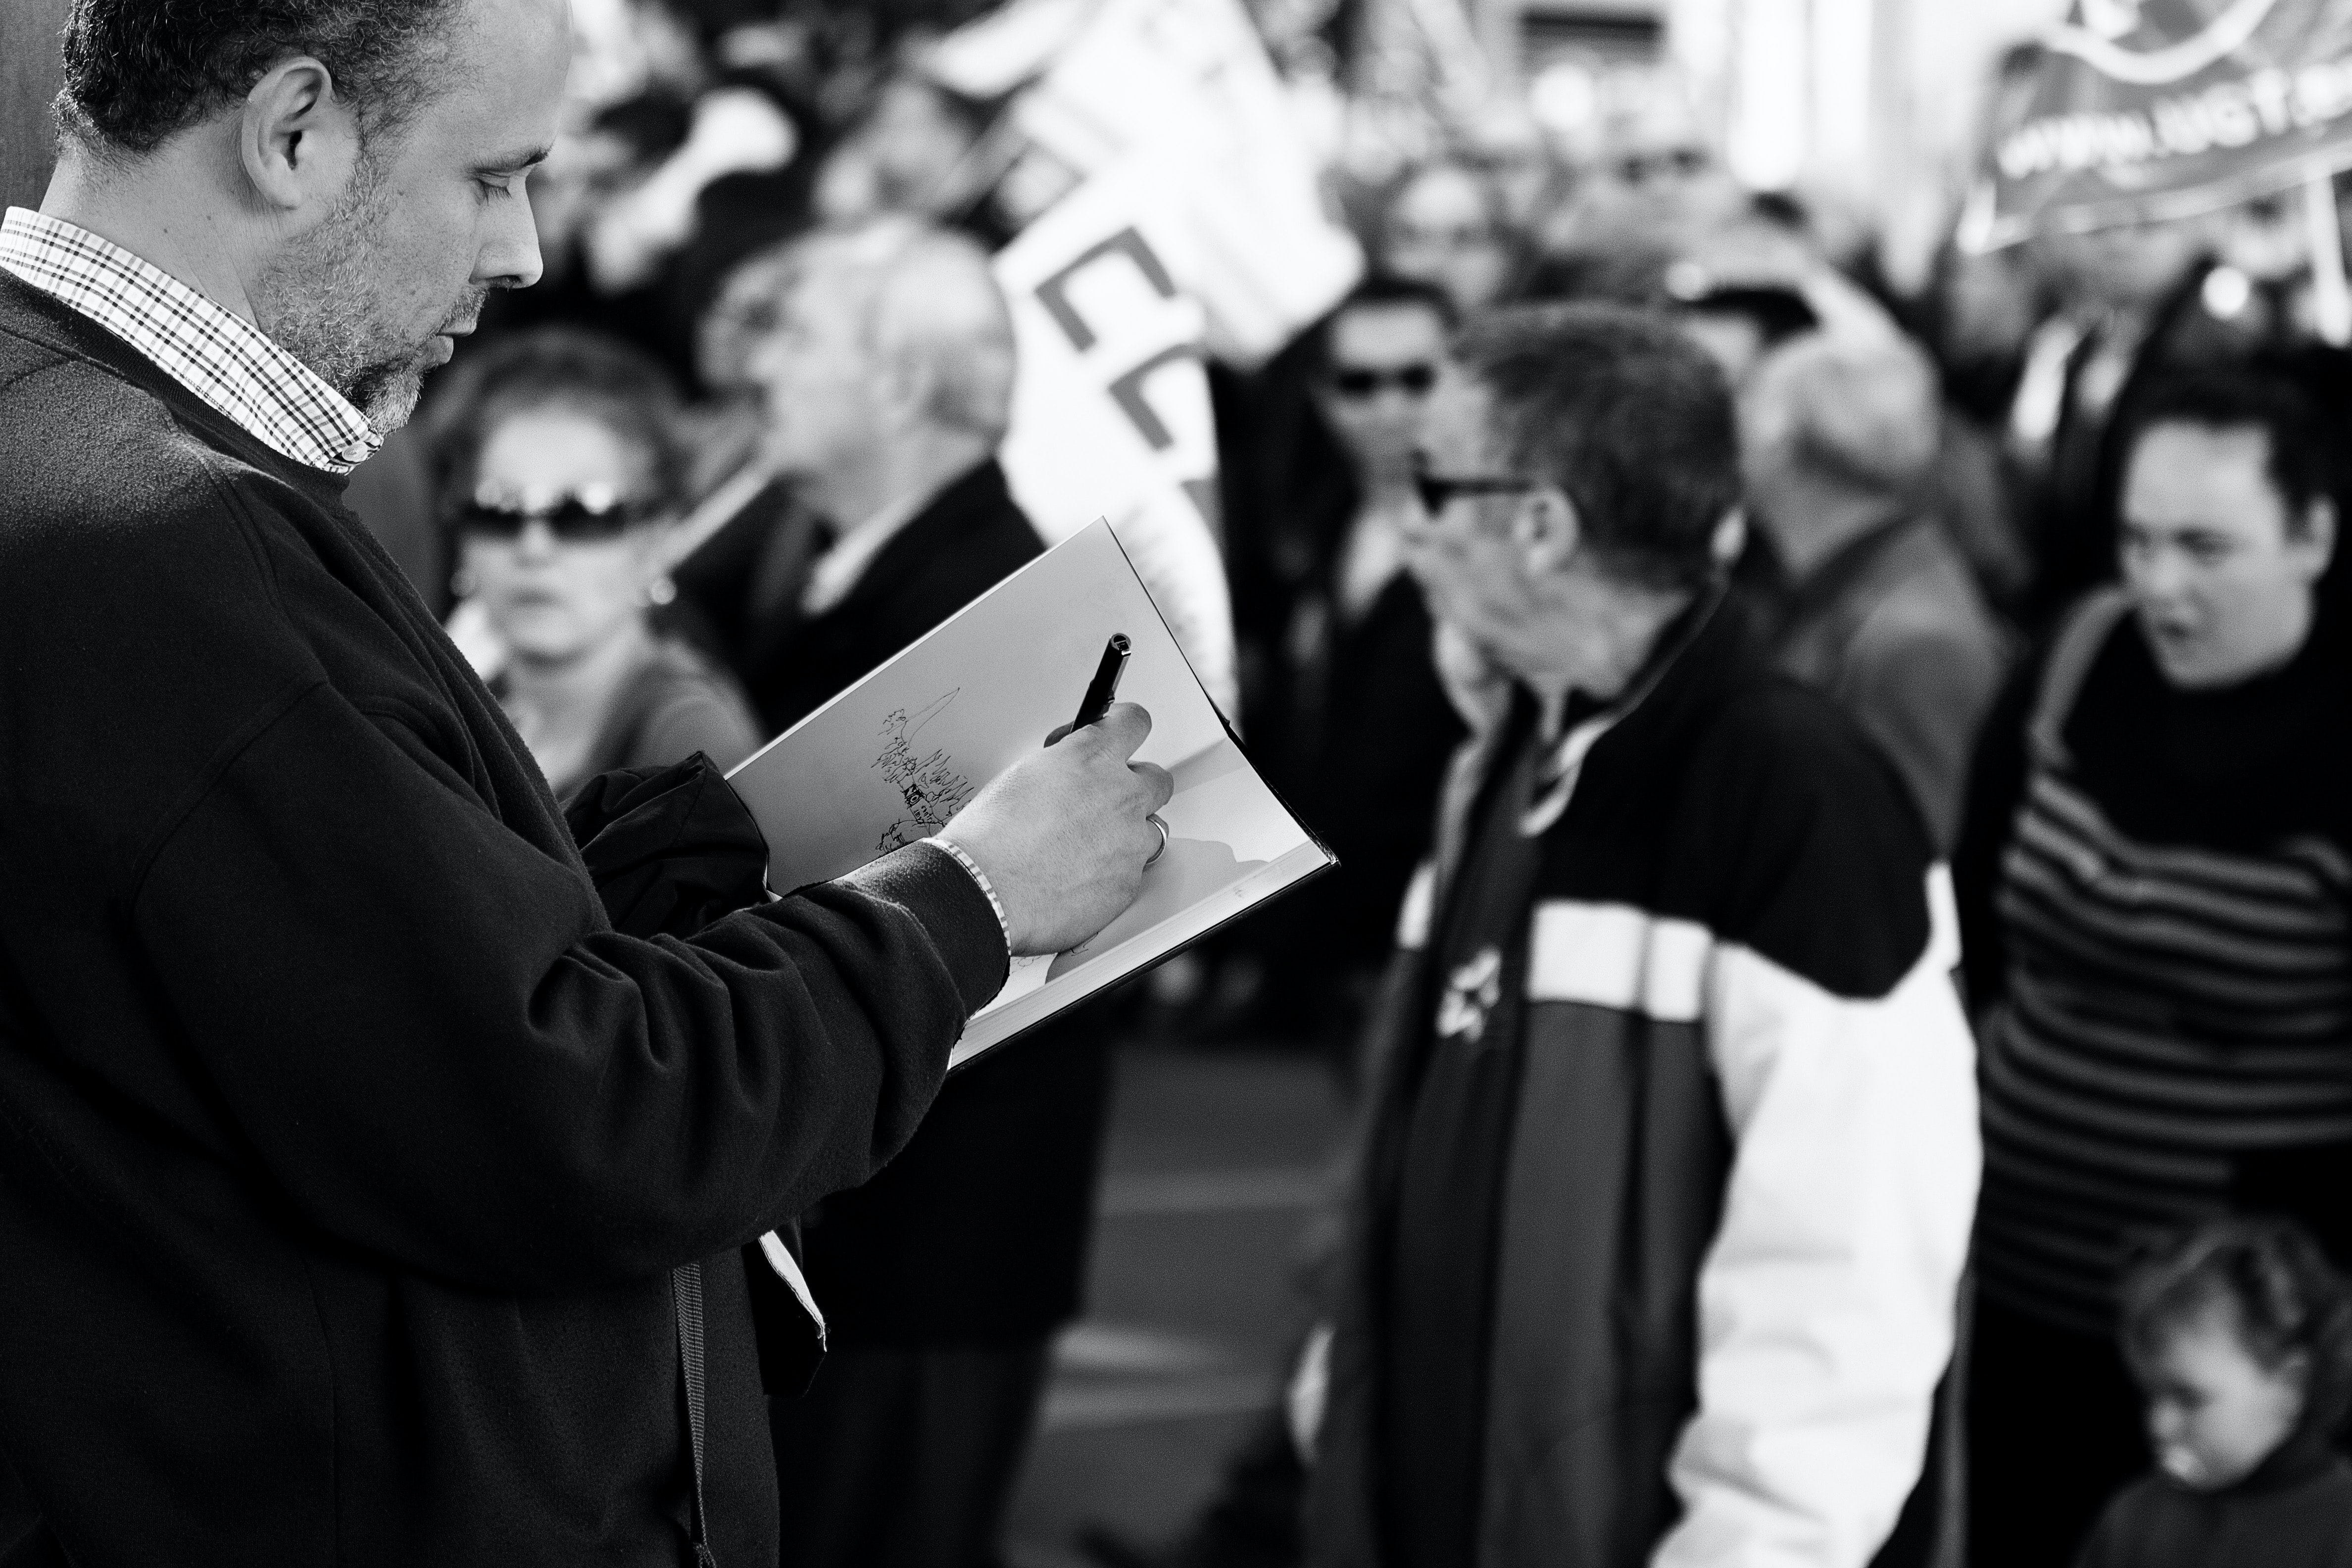 A black-and-white shot of a man scribbling in a notebook near a crowd of people